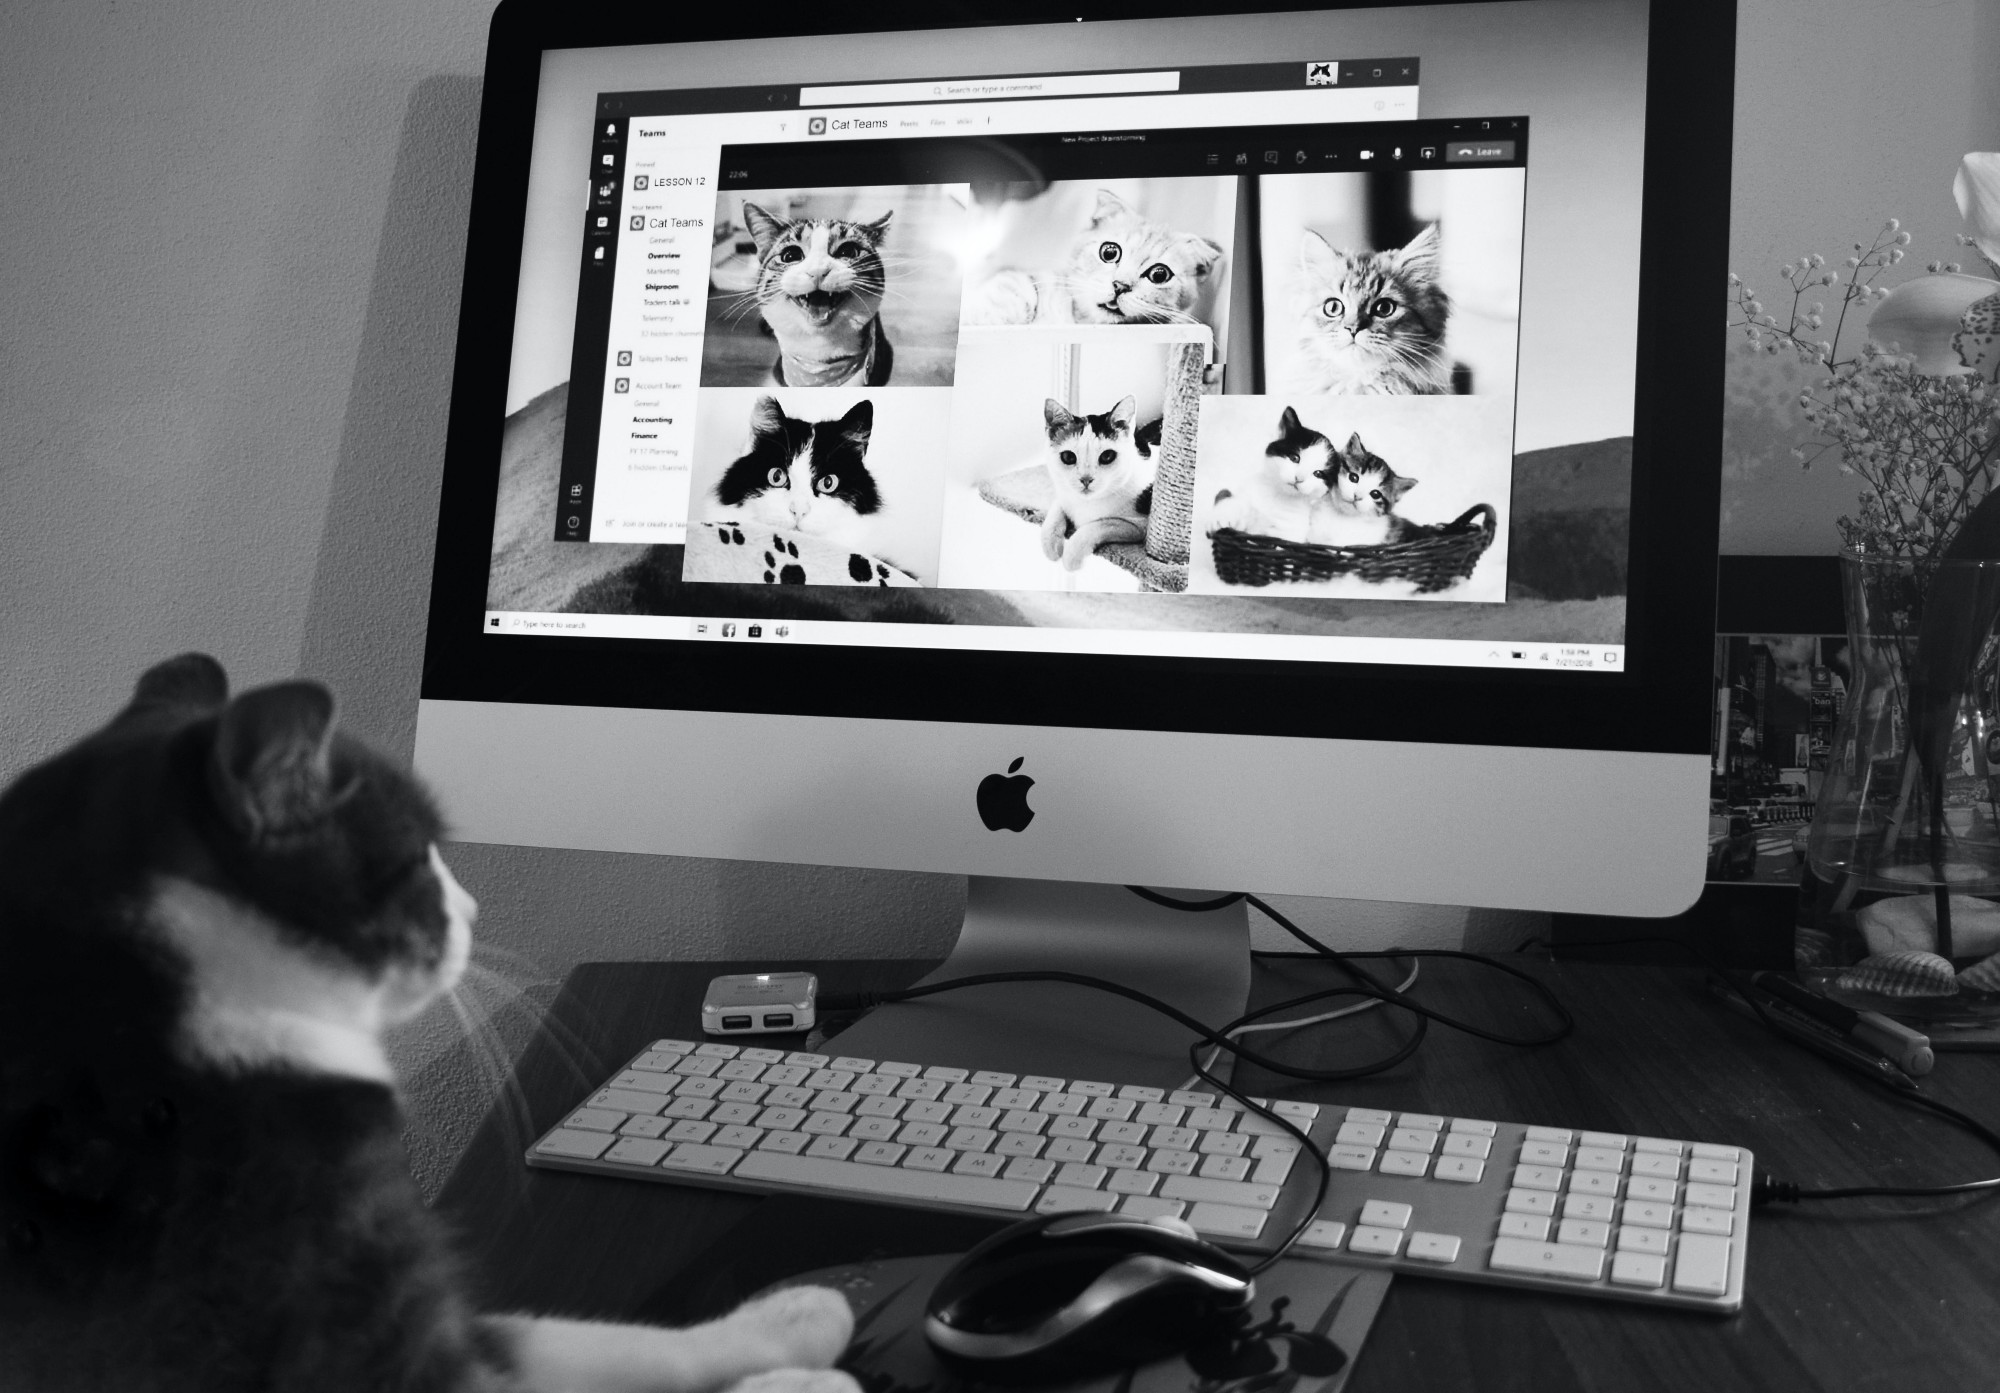 A black and white photo of a tuxedo cat sitting at a desktop computer. The cat appears to be on Zoom with six other cats.